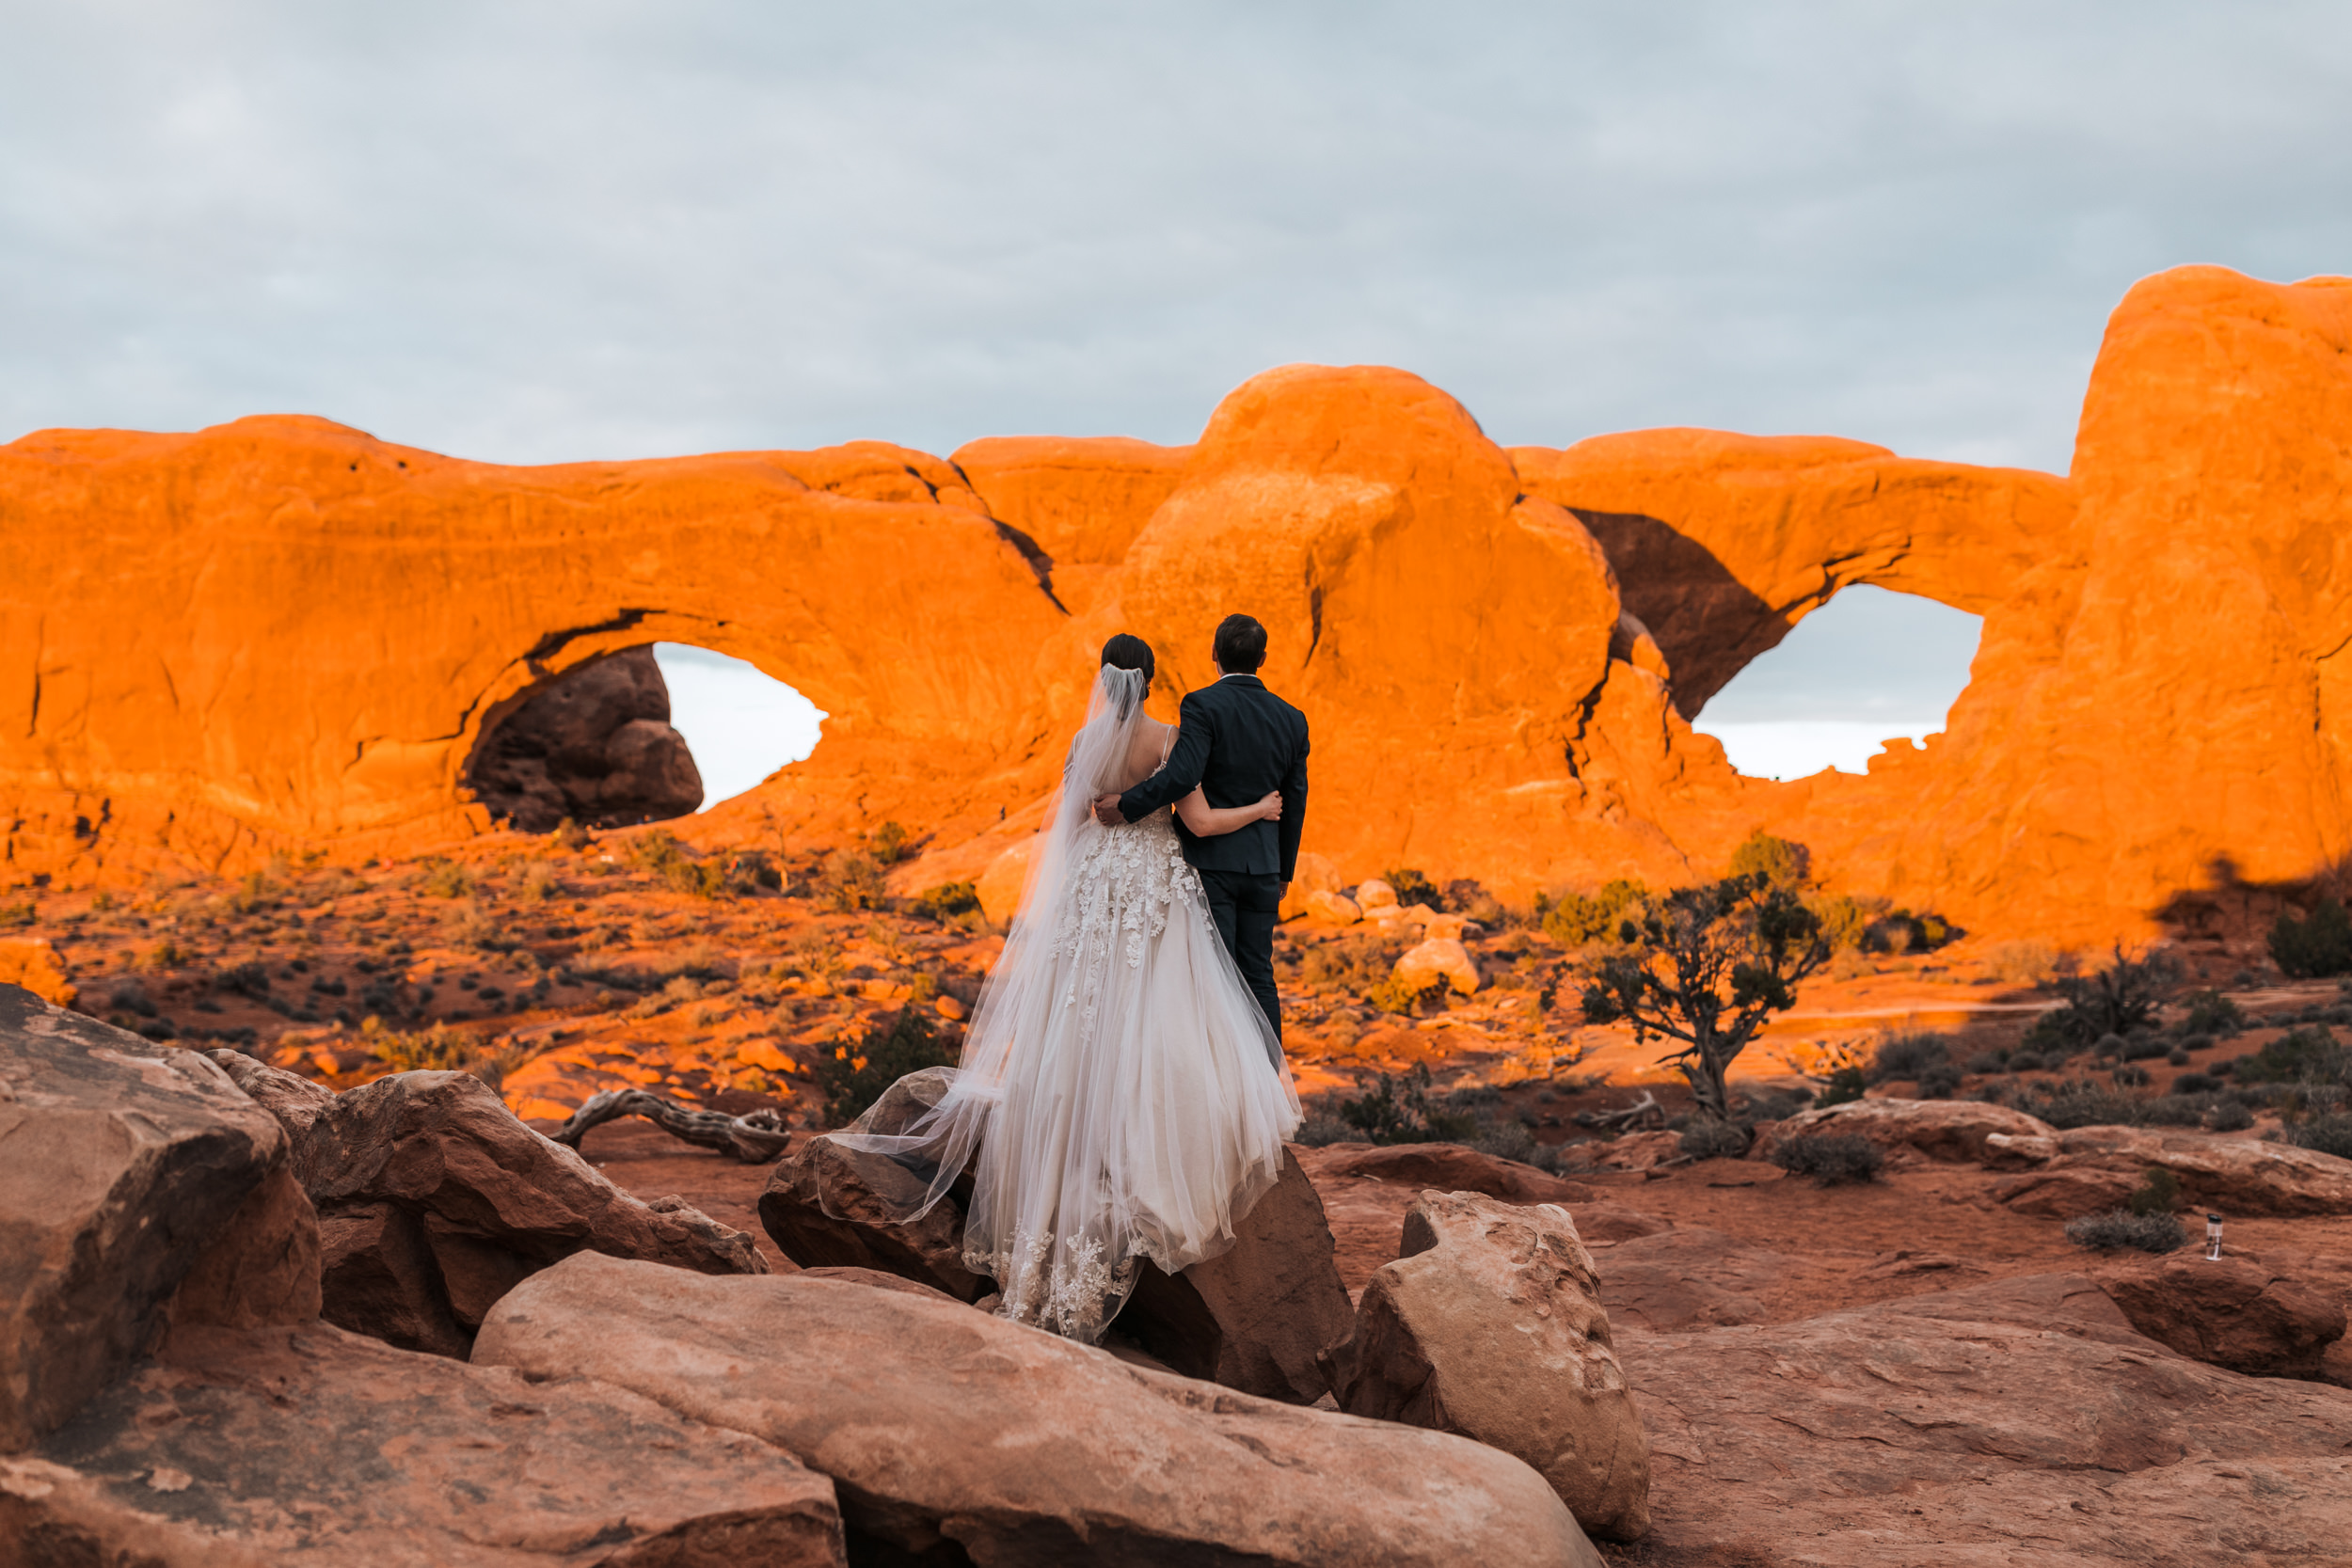 Hearnes-Elopement-Photography-Arches-national-park-moab-utah-wedding-1.jpg